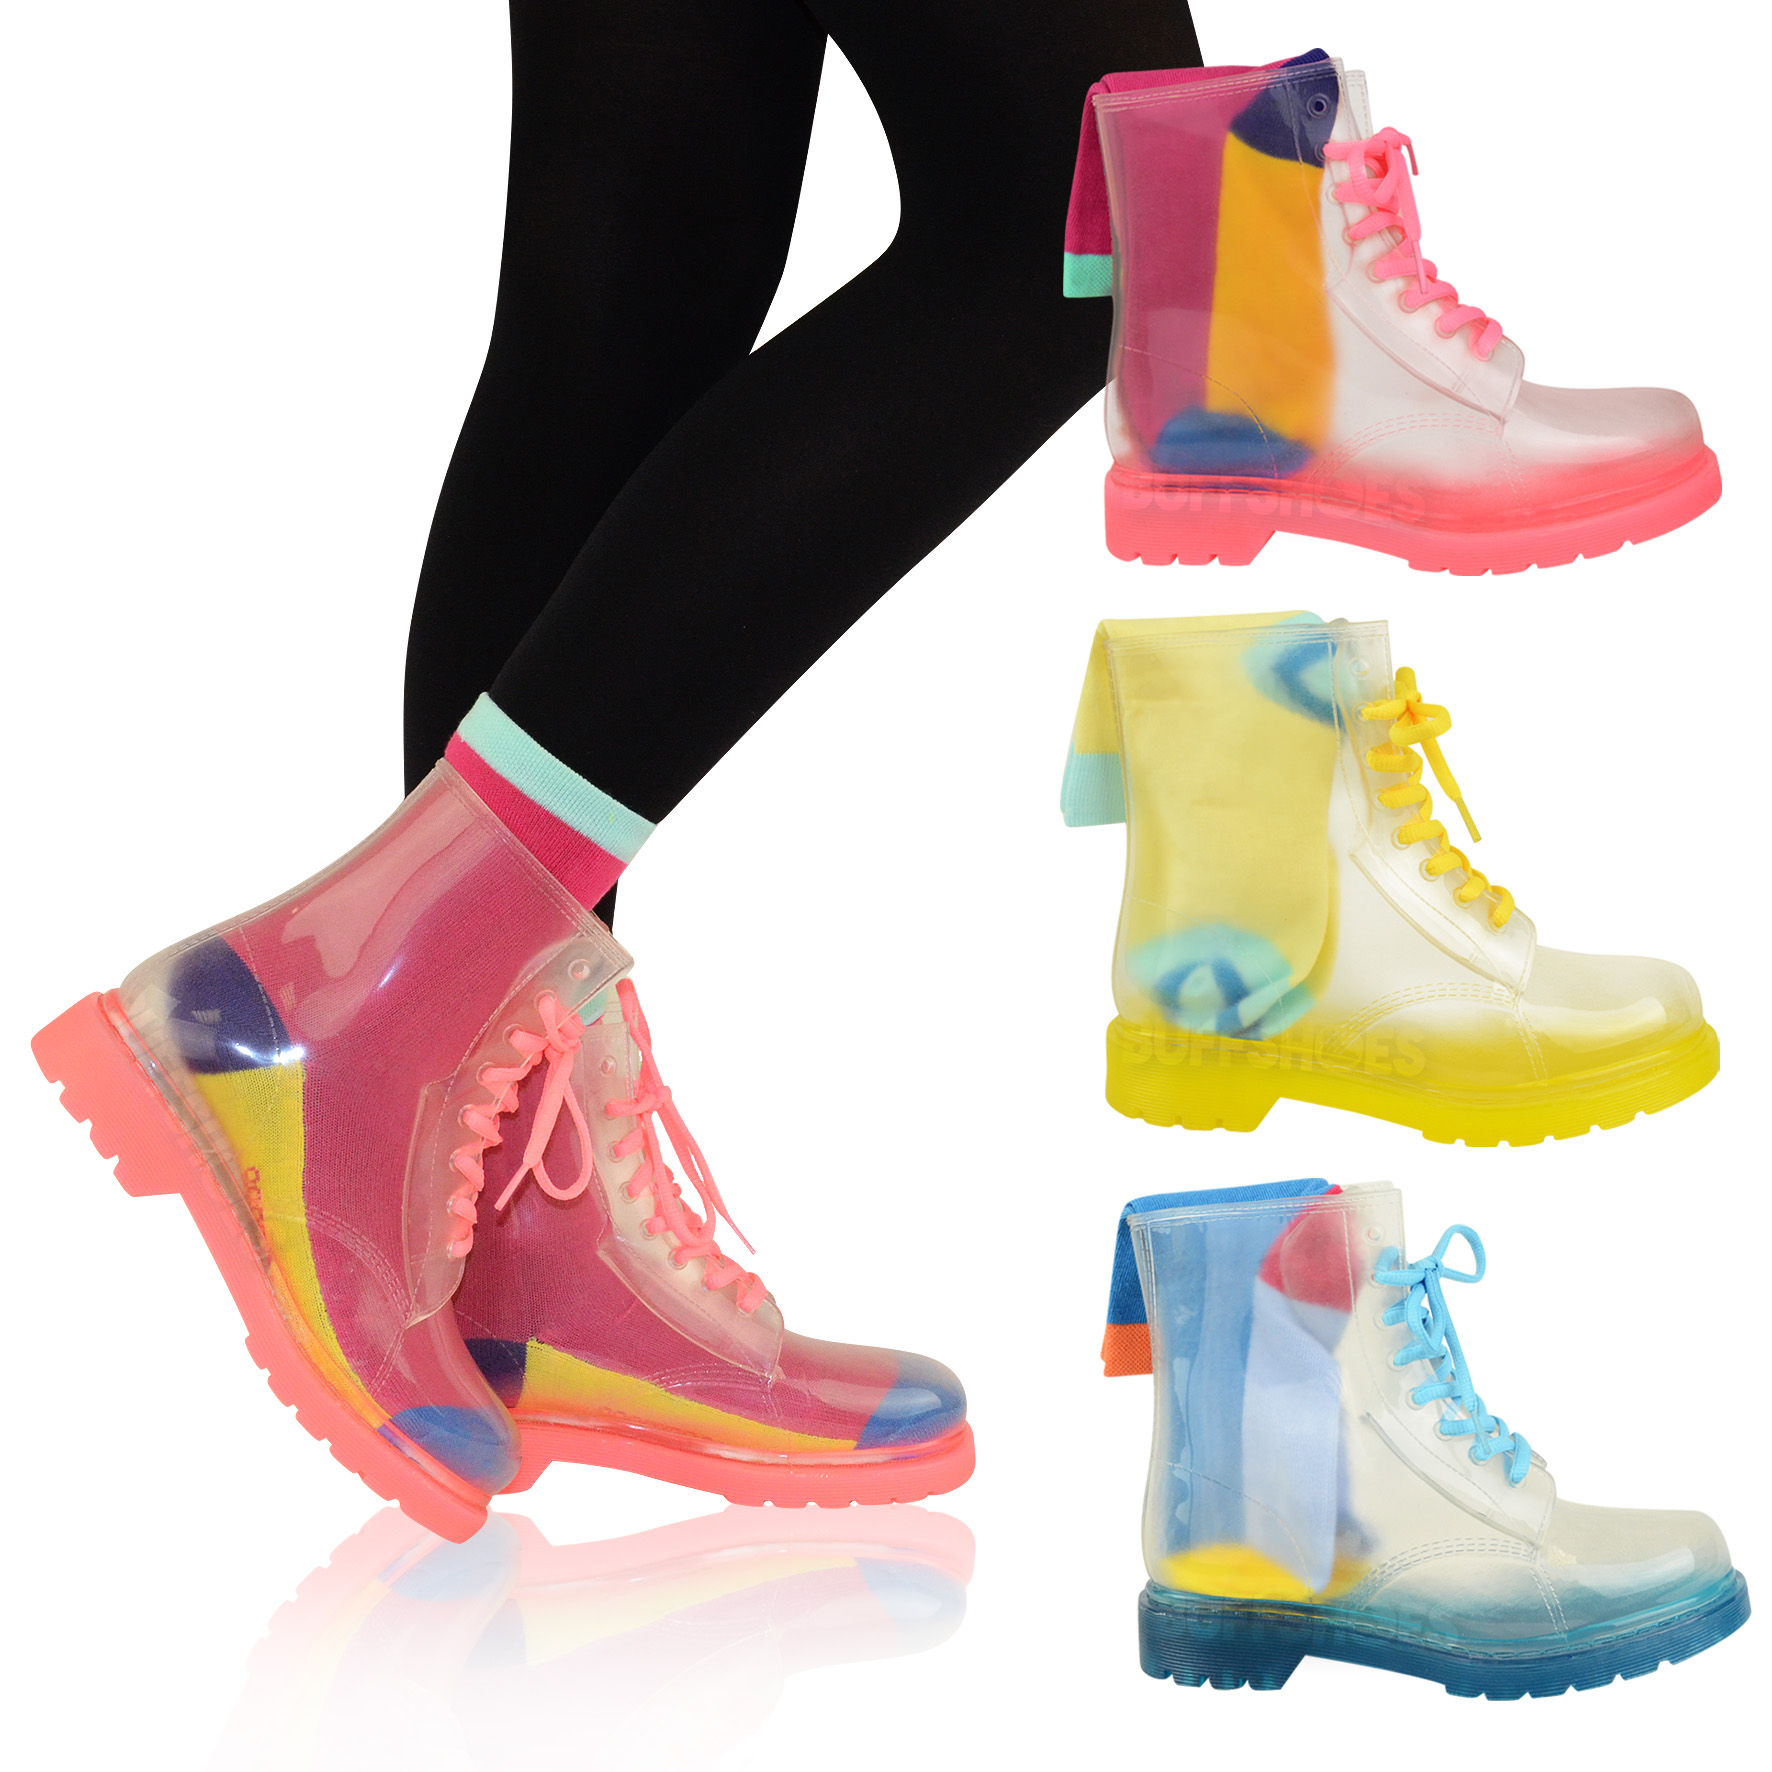 WOMENS LADIES FLAT CLEAR FESTIVAL JELLY WELLIES LOW ANKLE RAIN ...